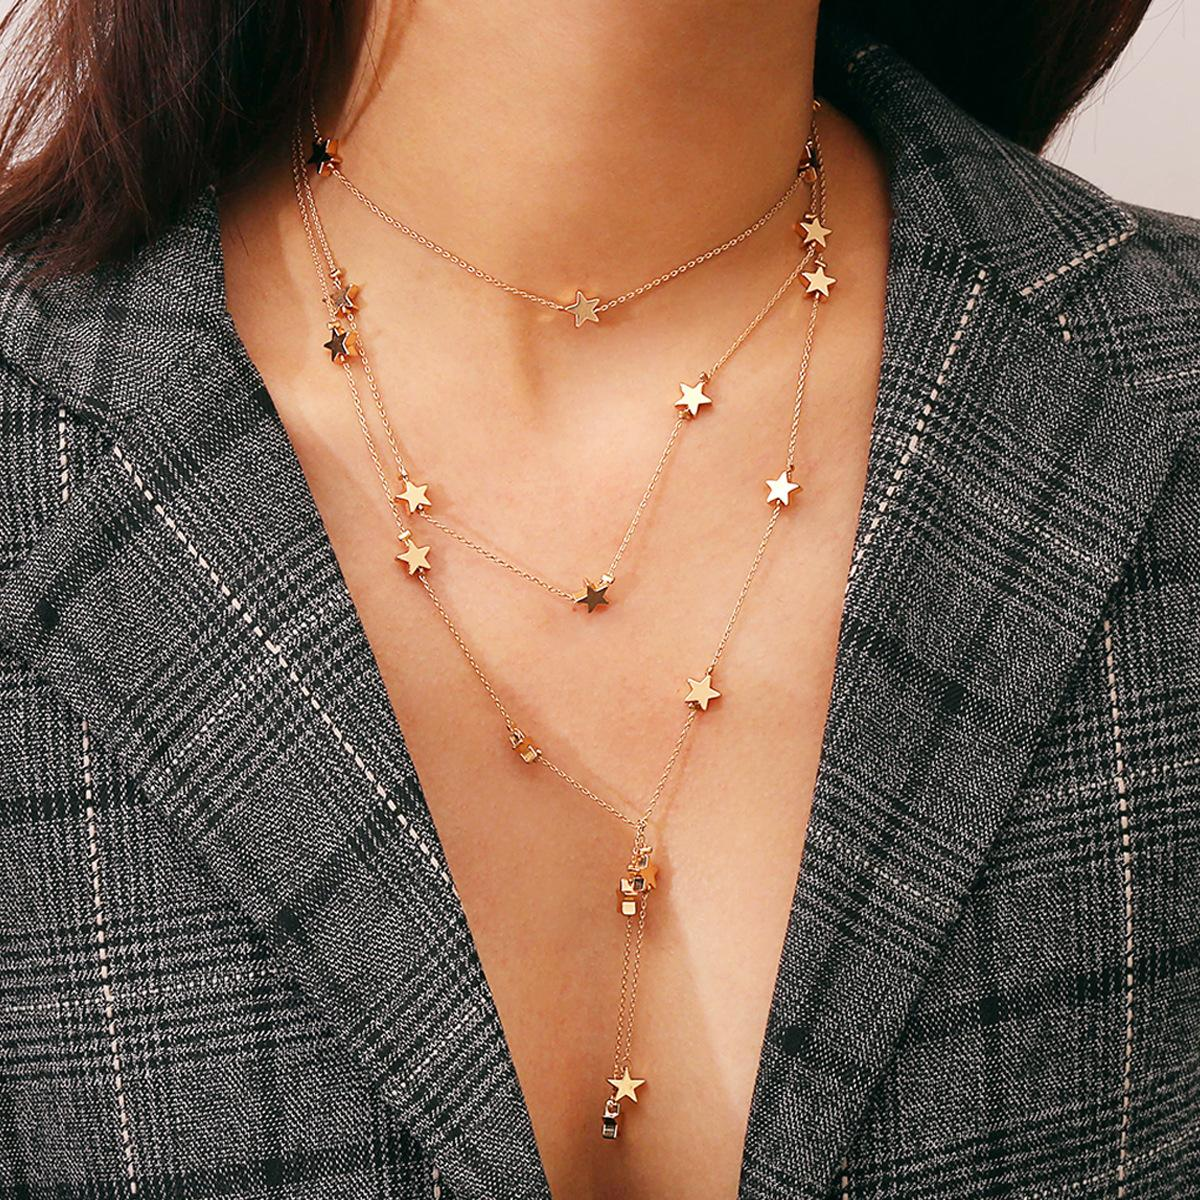 New arrival modern personalized custom Women Korean style Fashionable pendant tassel necklace wholesale adult jewelry accessories